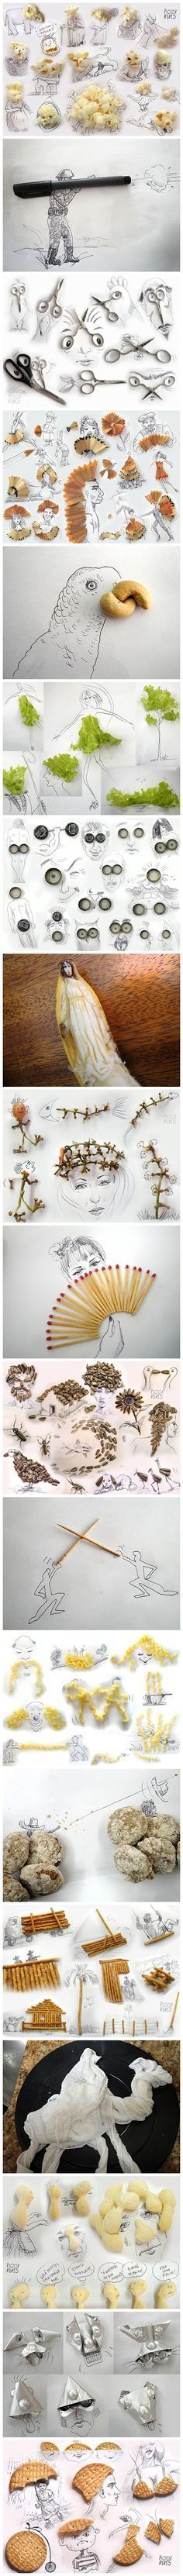 """Victor Nunes will change the way you look at common-day things. Seriously, what a whimsical imagination he must have. Artist Victor Nunes turns everyday objects into sets of cute and quirky doodles. He launched his Facebook page only 2 weeks ago and it has already amassed over 4,000 followers. Its only message is in Portuguese which translates to """"On this page you will find a bunch of little faces and other little things. And with great humor!"""" in English."""